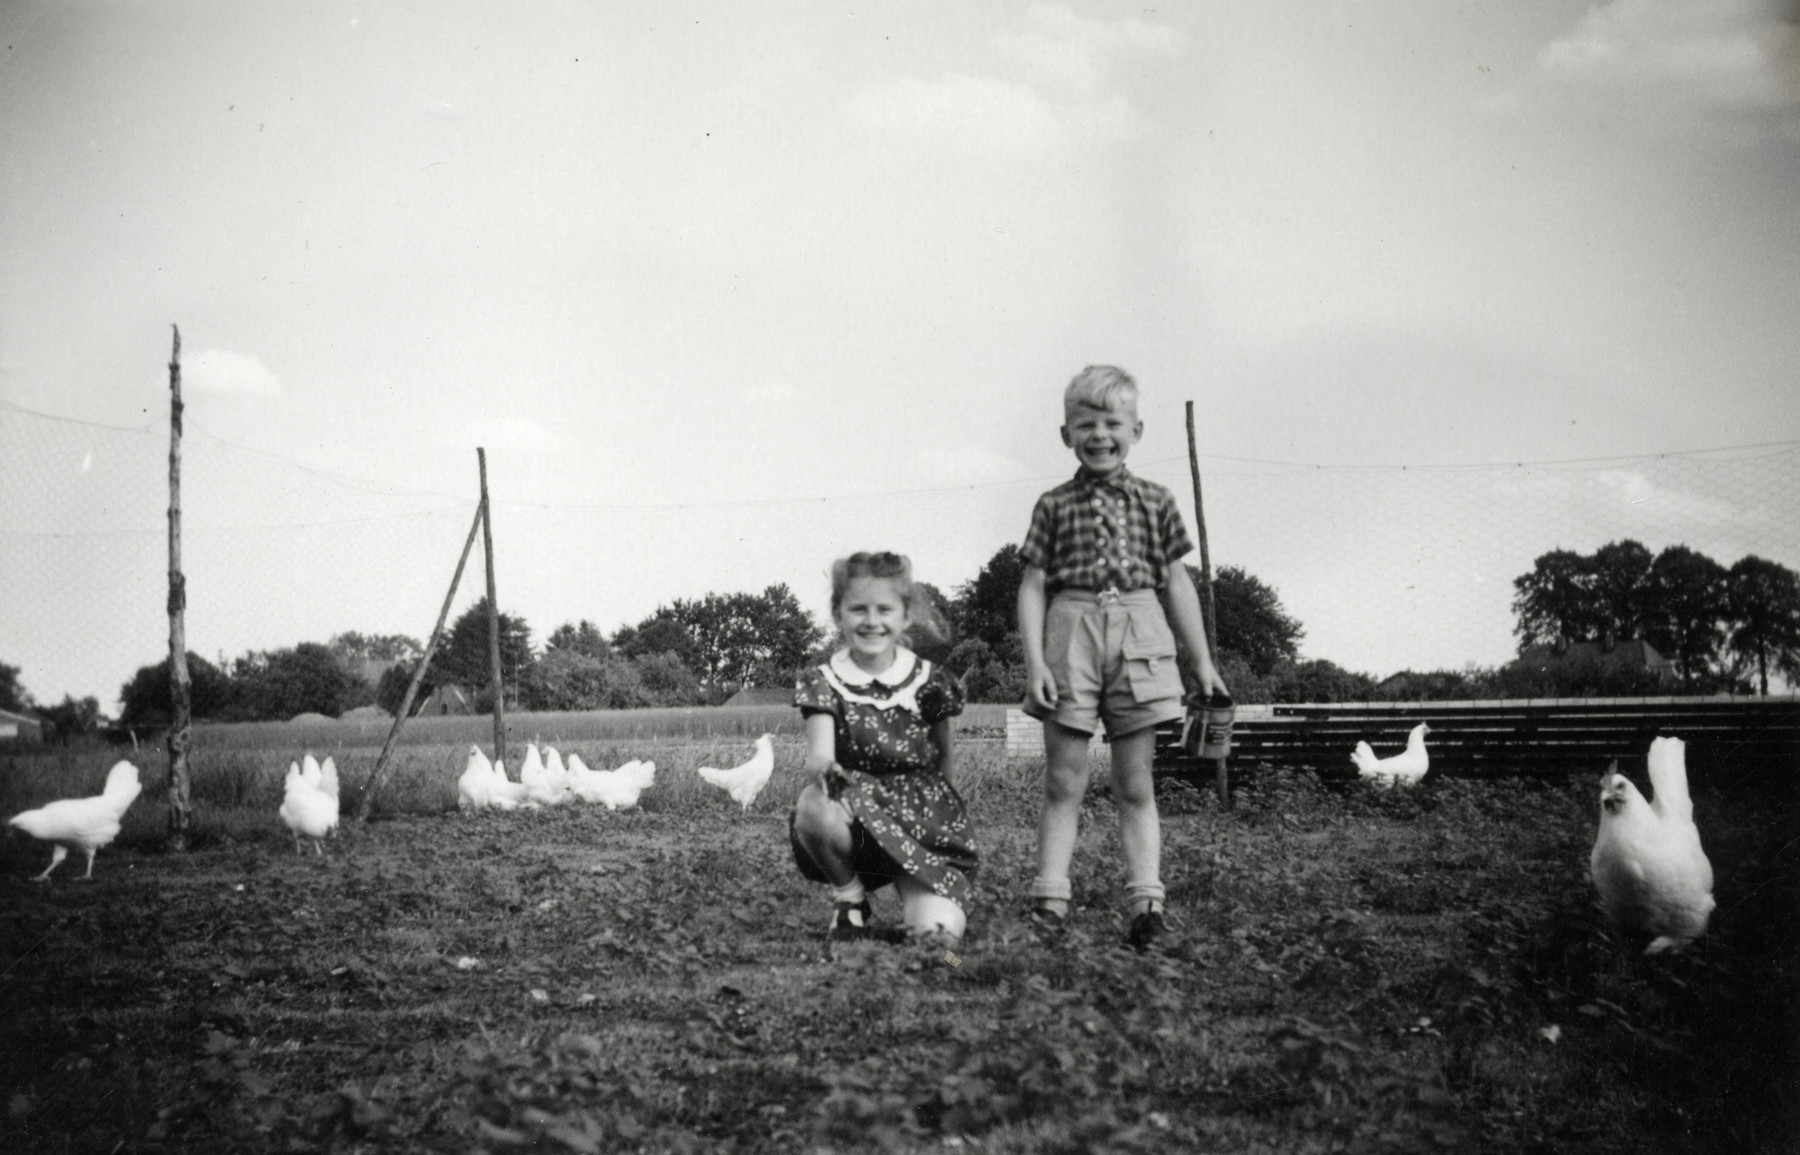 The children of rescuers Reinier and Margaret Veerman play outside among the chickens.